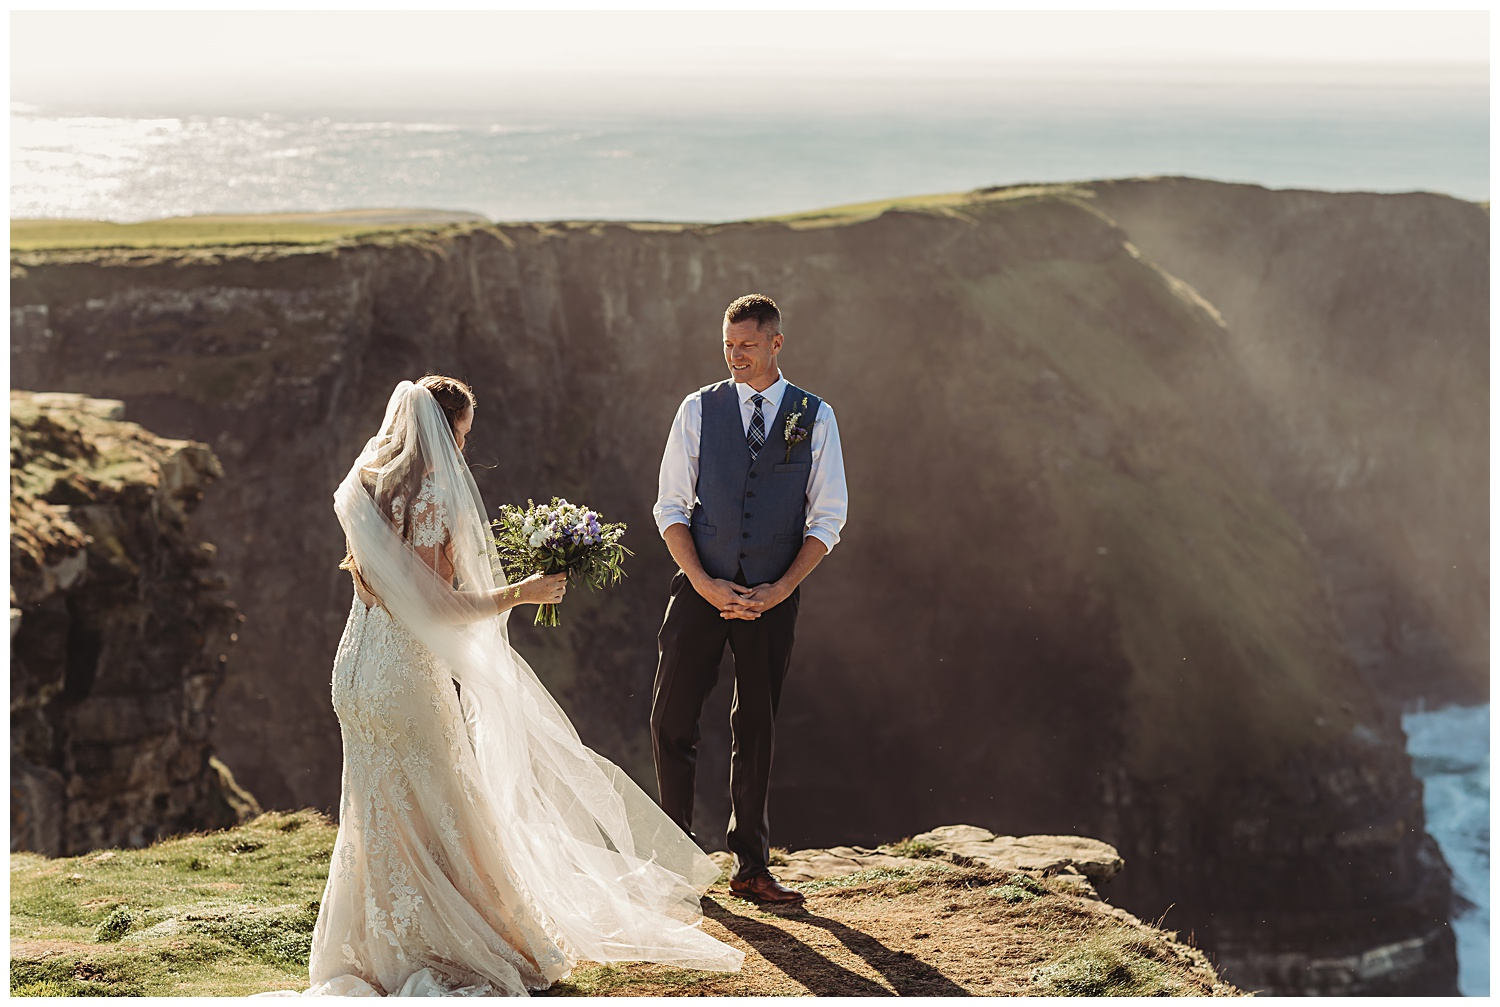 The Cliffs of Moher Destination Wedding Liscannor, County Clare, Ireland_1223.jpg